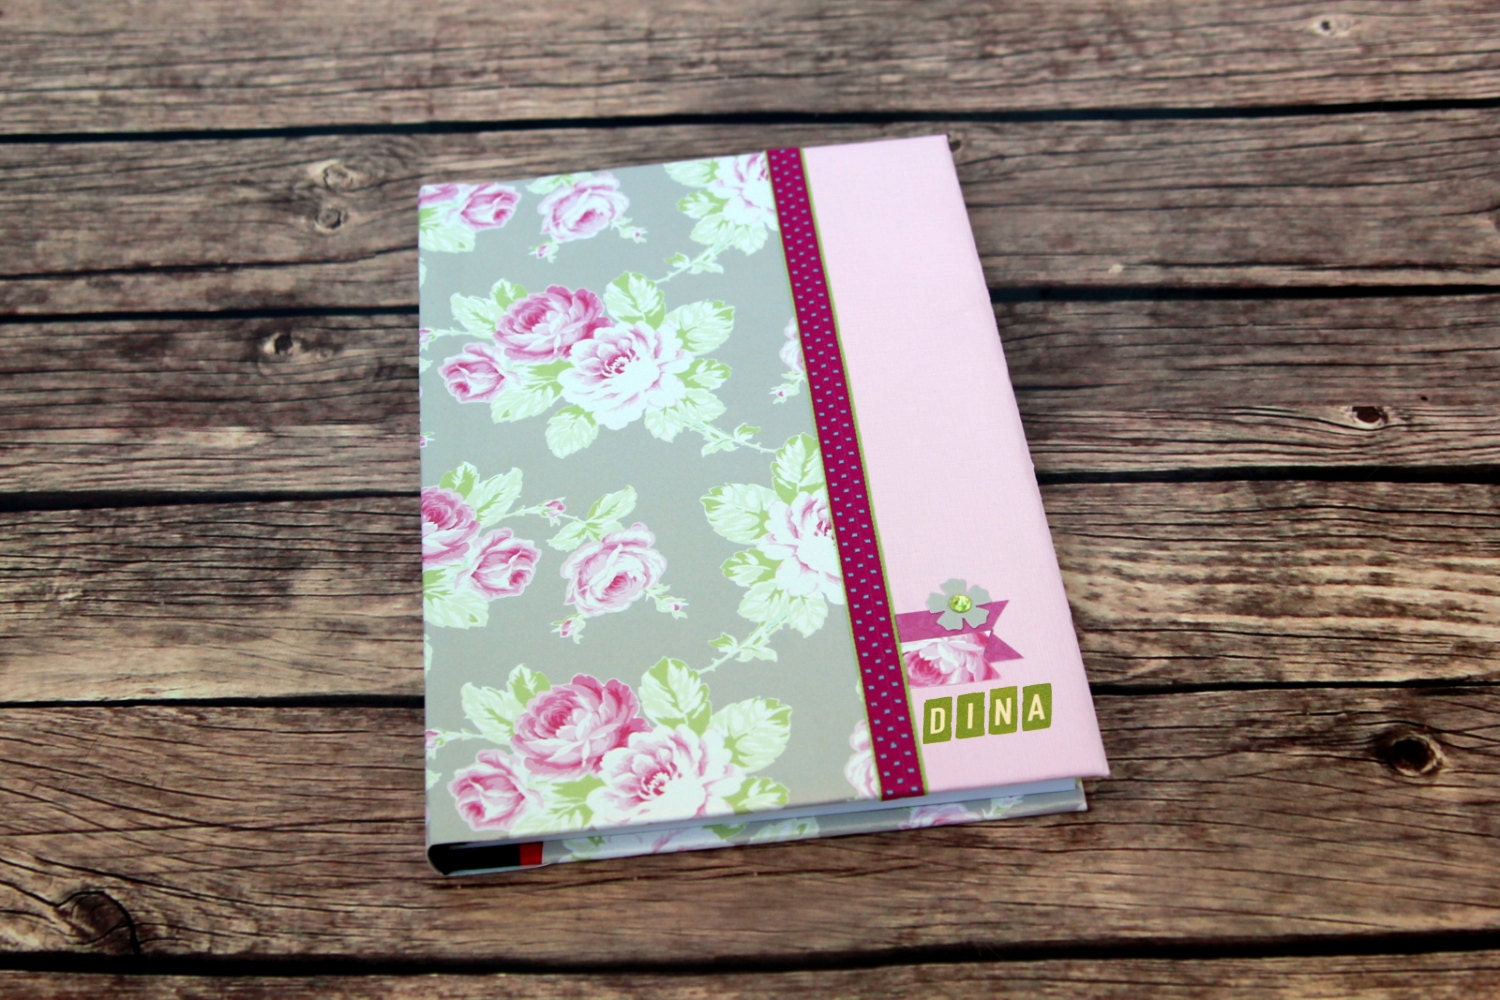 Best custom writing notebook for business